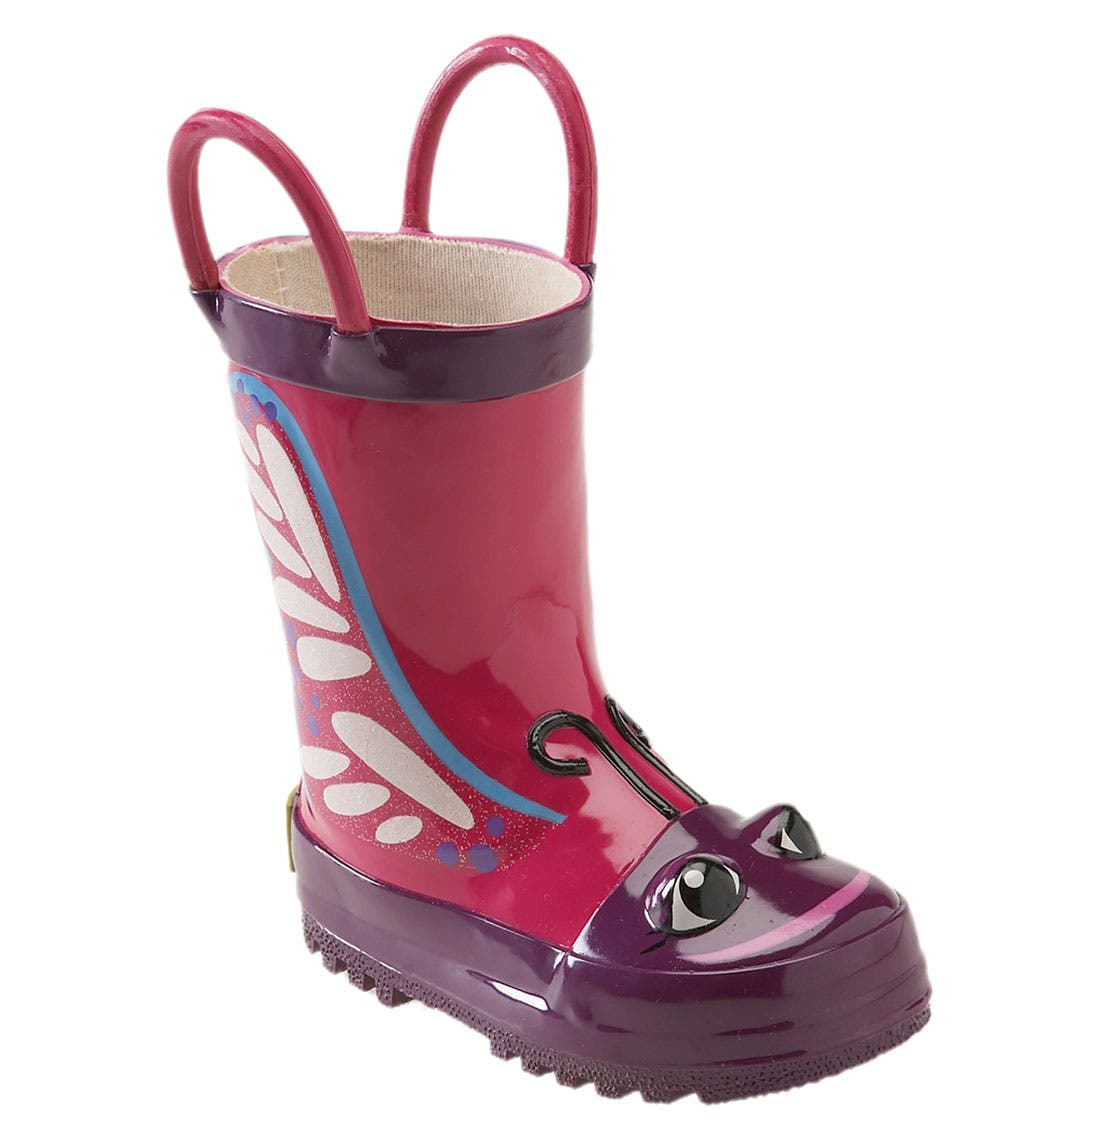 Alternate Image 1 Selected - Western Chief 'Butterfly' Rain Boot (Walker, Toddler, Little Kid & Big Kid)